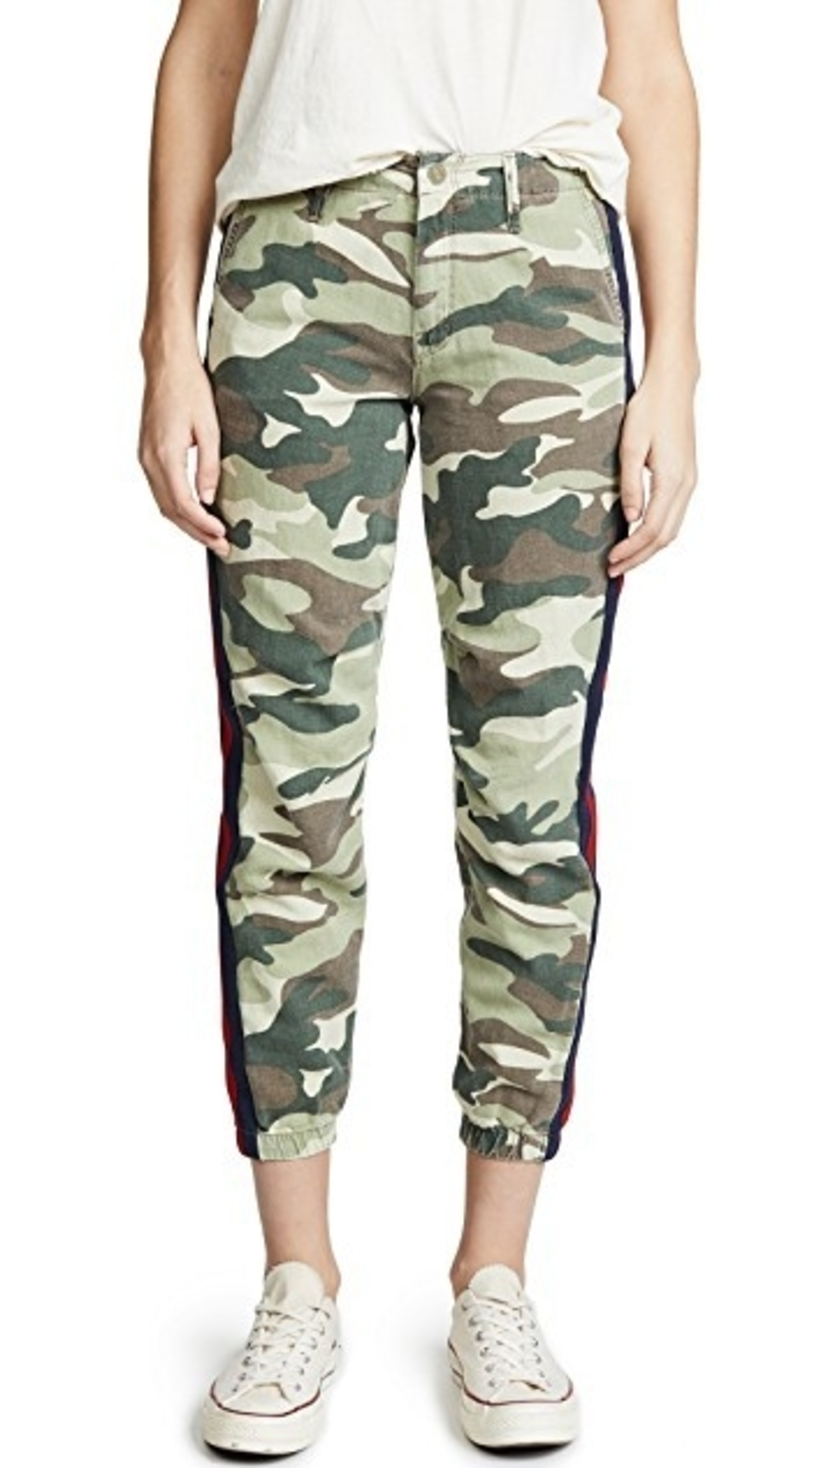 Mother The No Zip Misfit - Camouflage Pants